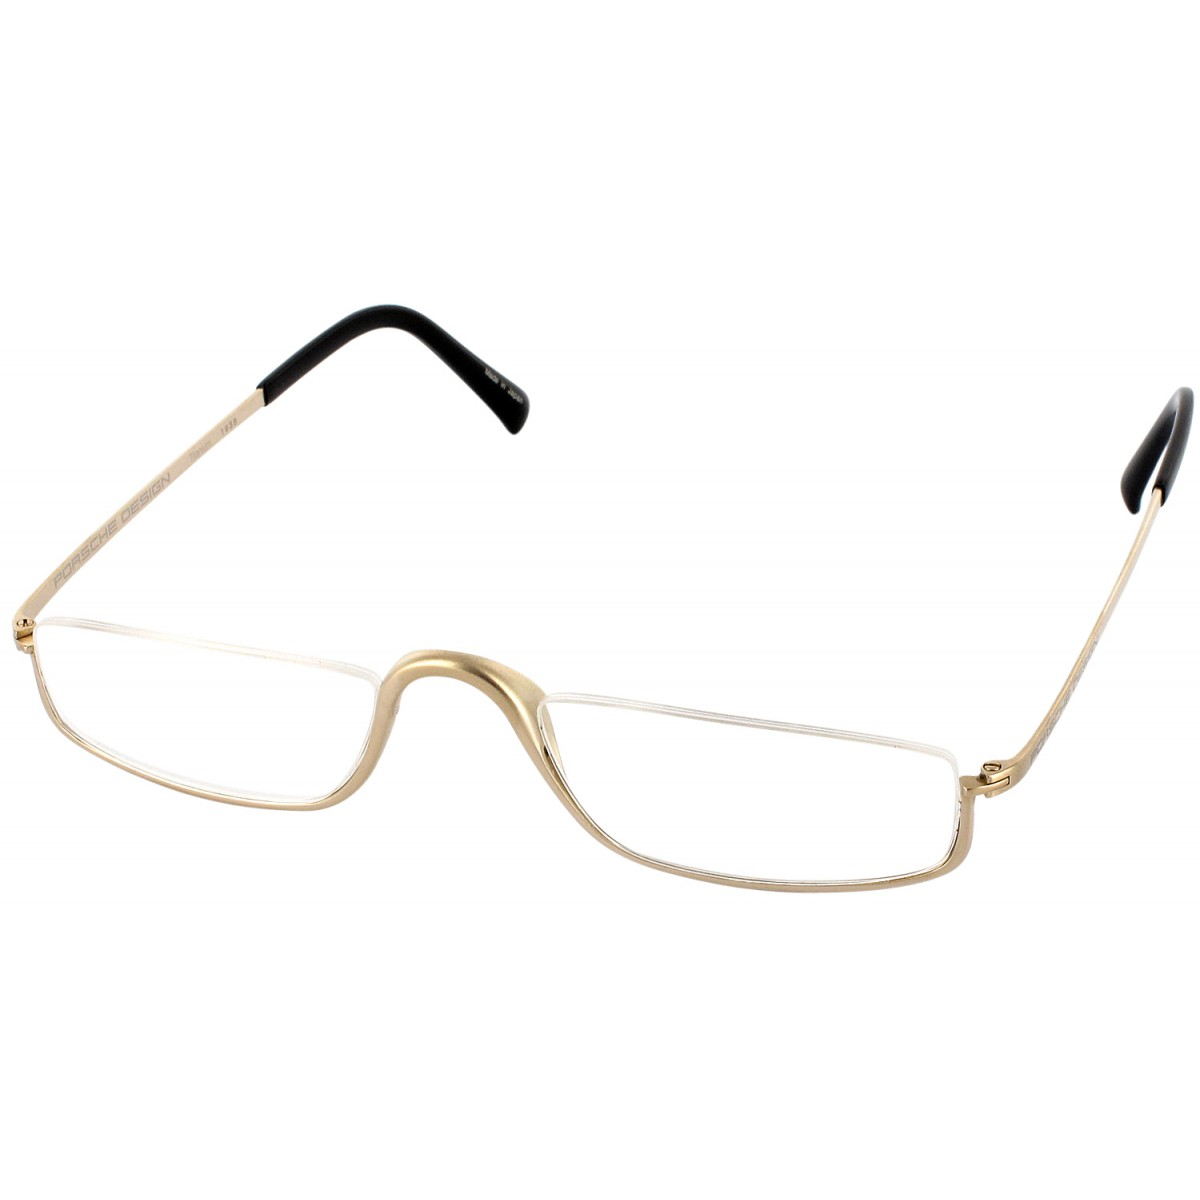 45dc0664c814 Porsche Design 8002 Matte Gold Reading Glasses Price in Pakistan